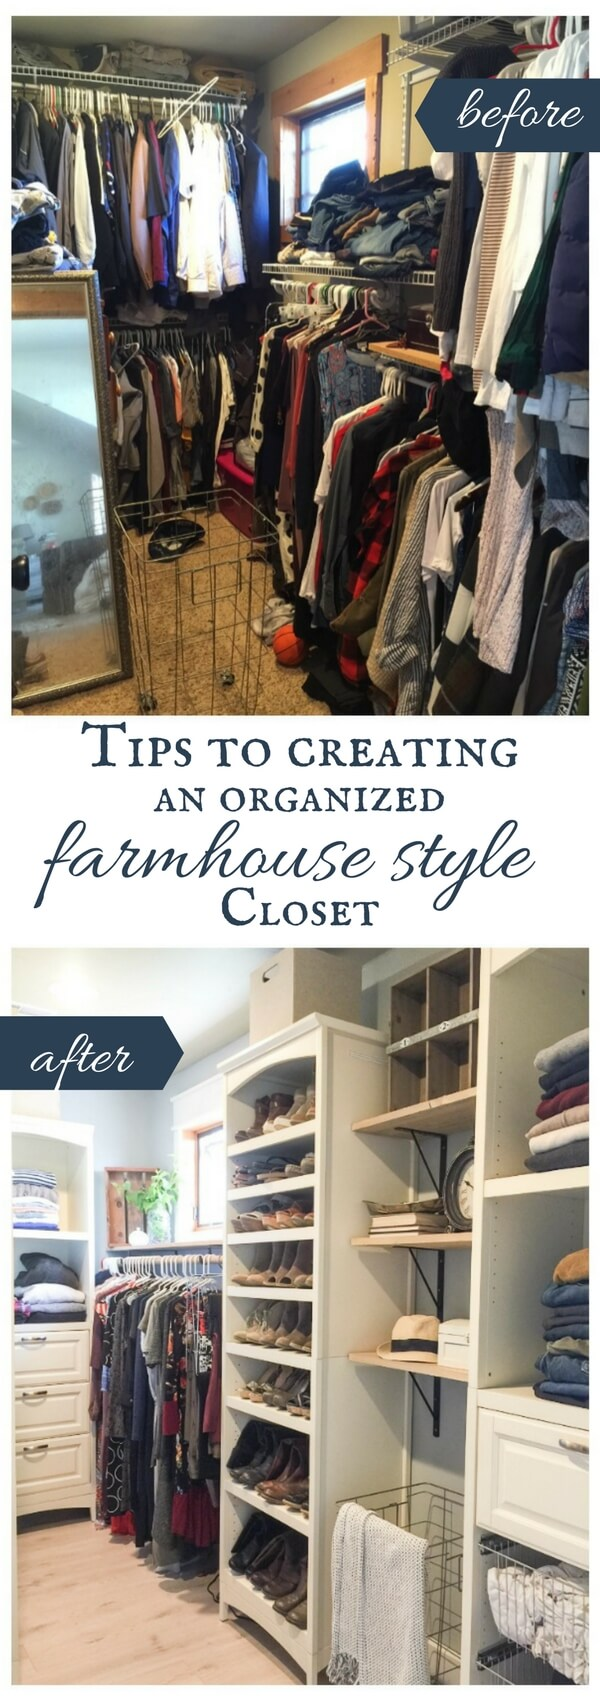 Tips to creating a closet design that is organized as well as stylish